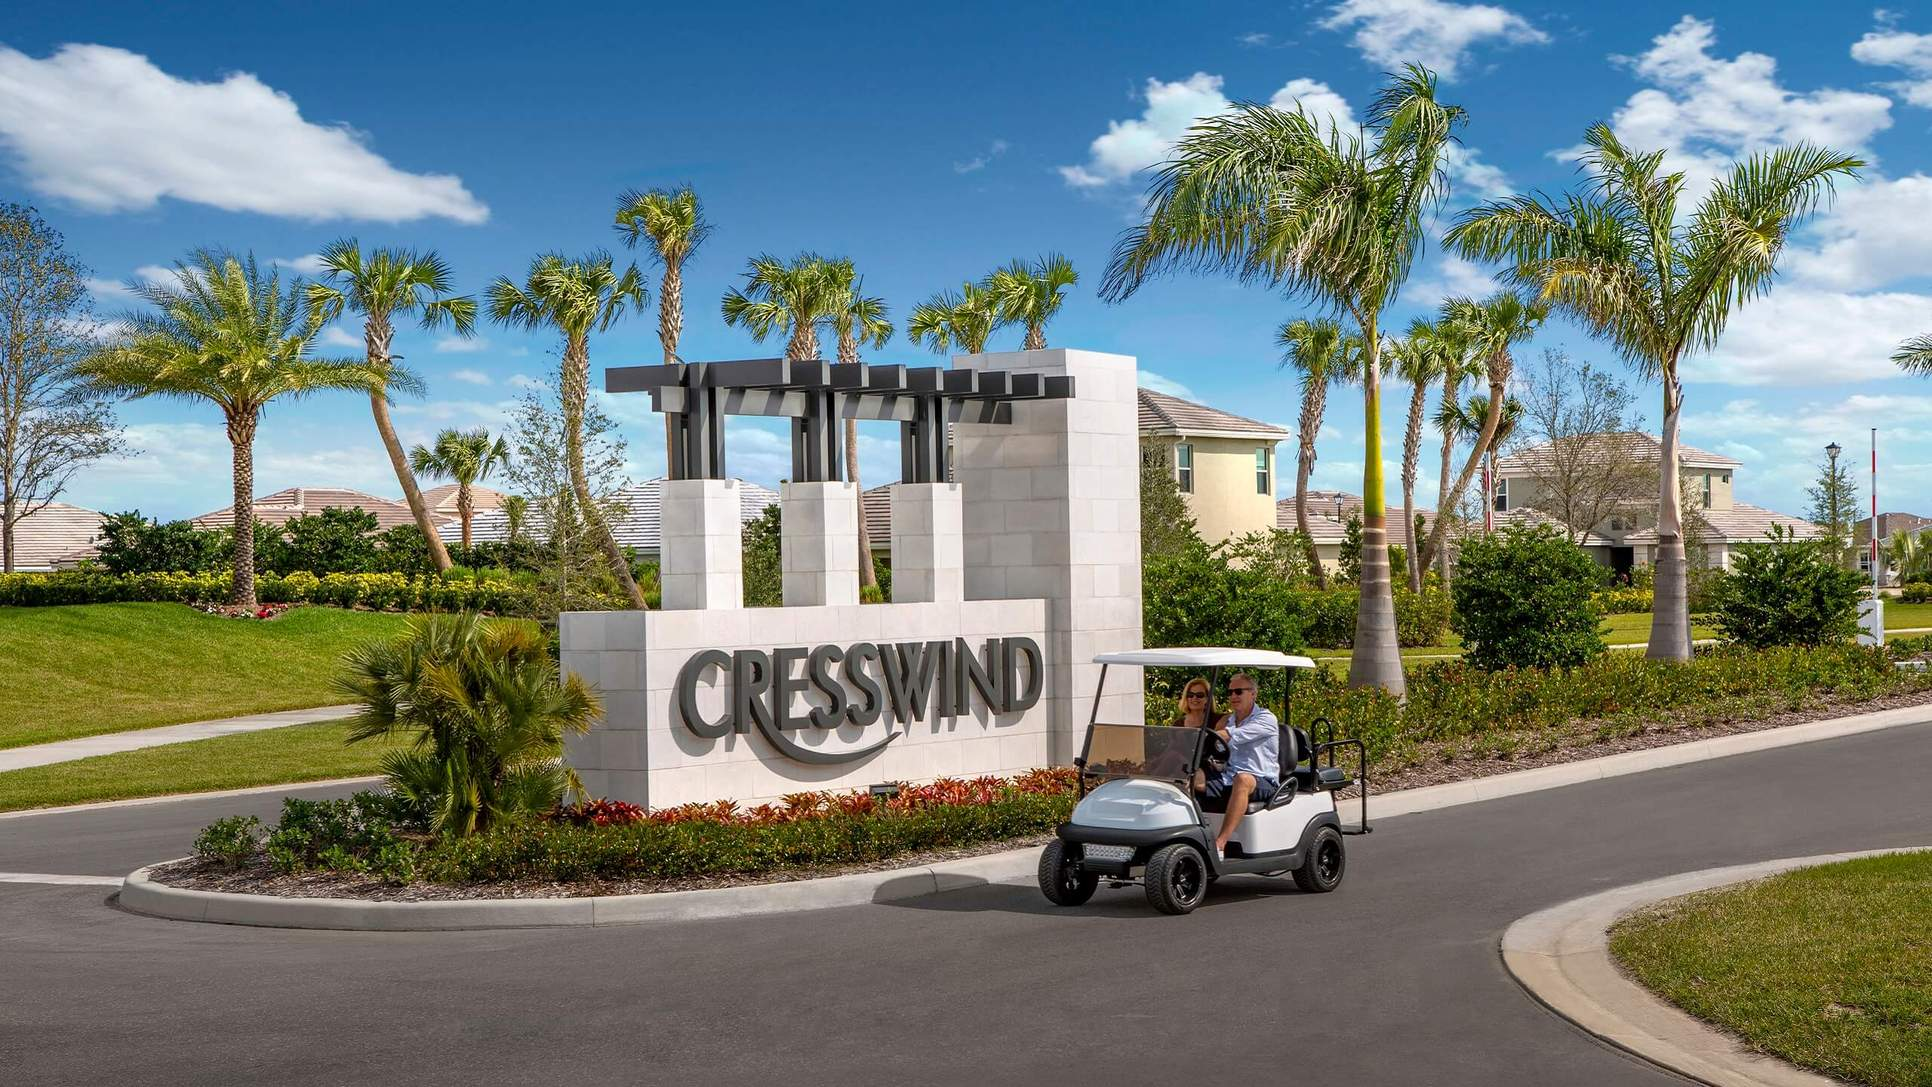 Cresswind at PGA Village Verano,34986